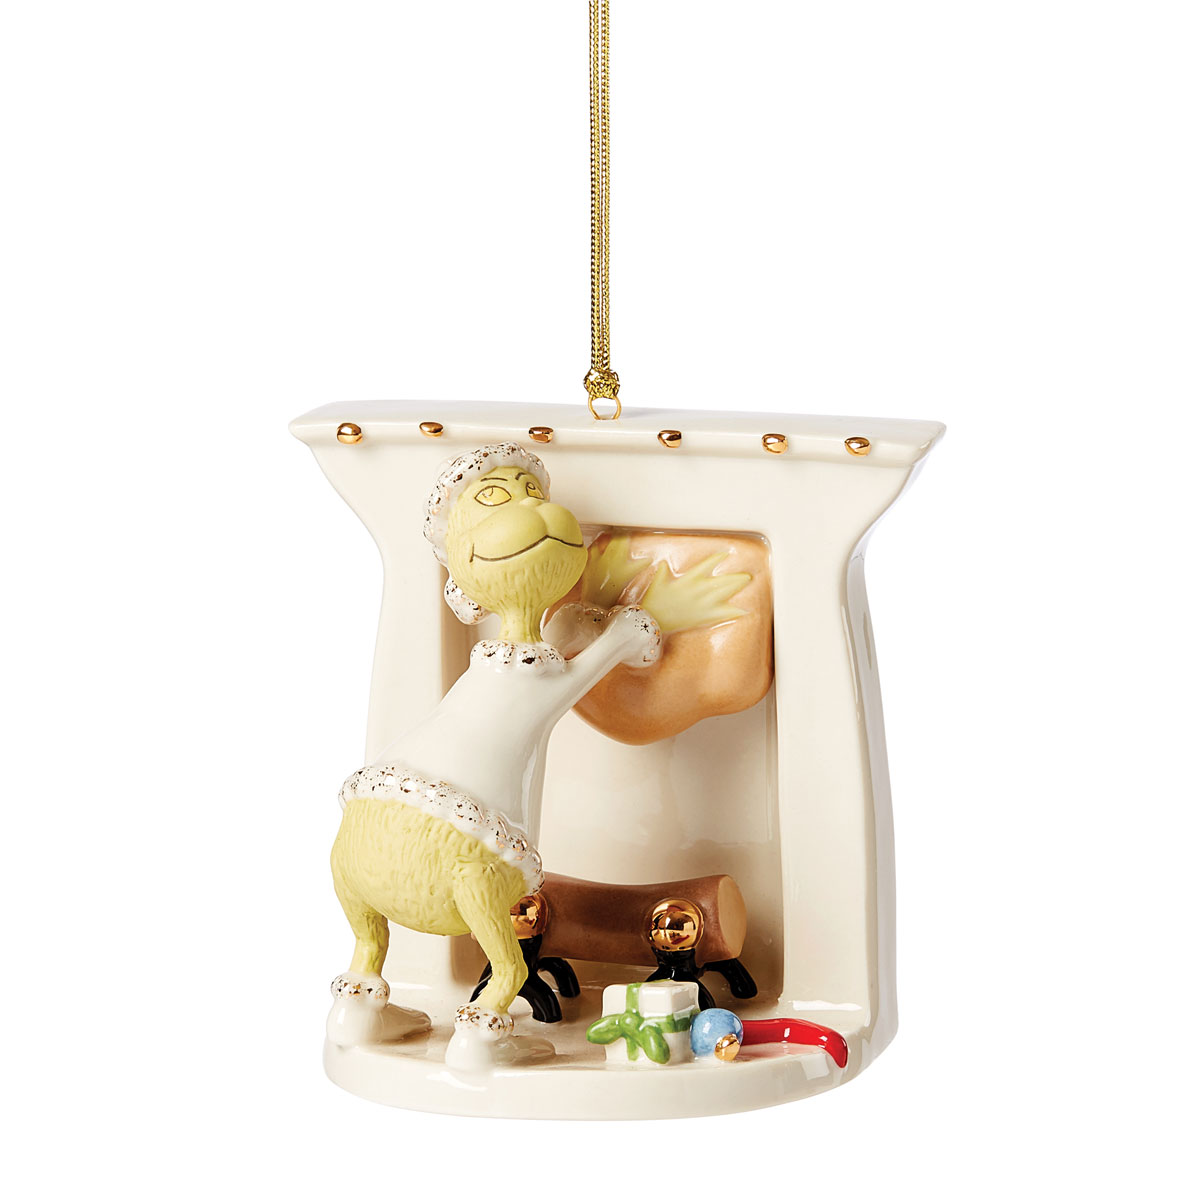 Lenox 2021 Gift-Stealing Grinch Ornament